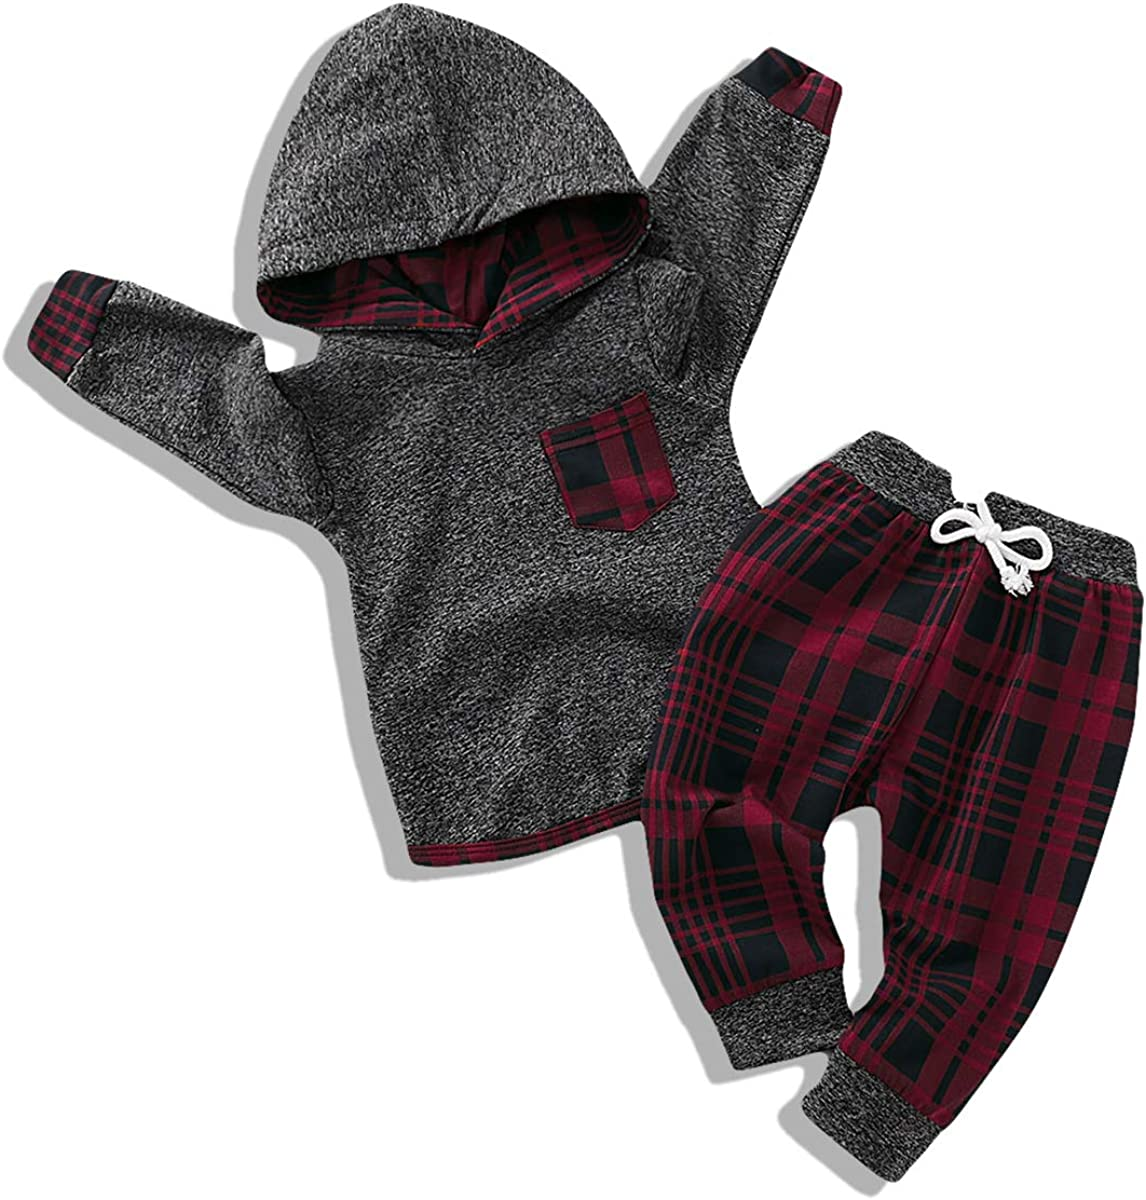 Toddler Infant Baby Boy Clothes Outfit Plaid Long Sleeve Hoodie Sweatshirt Pants Fall Winter Clothes Set for Baby Boy: Clothing